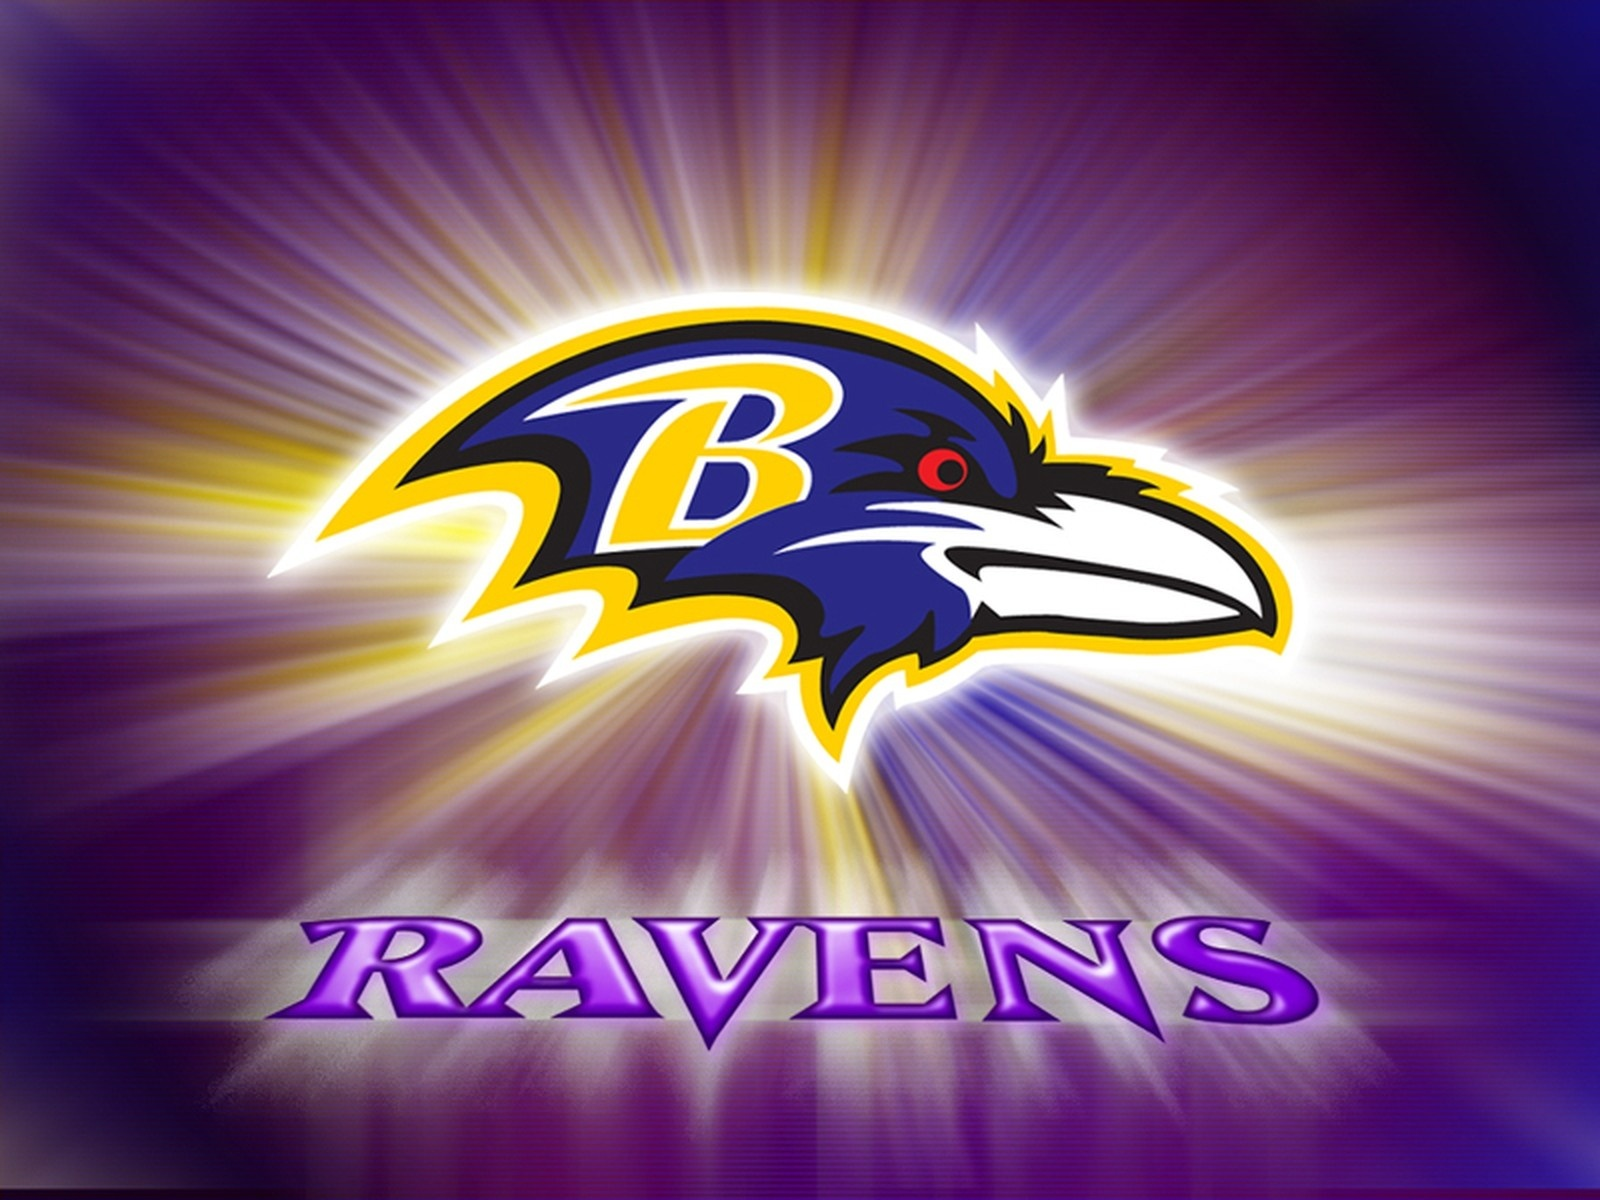 Baltimore Ravens wallpaper 2366 1600x1200